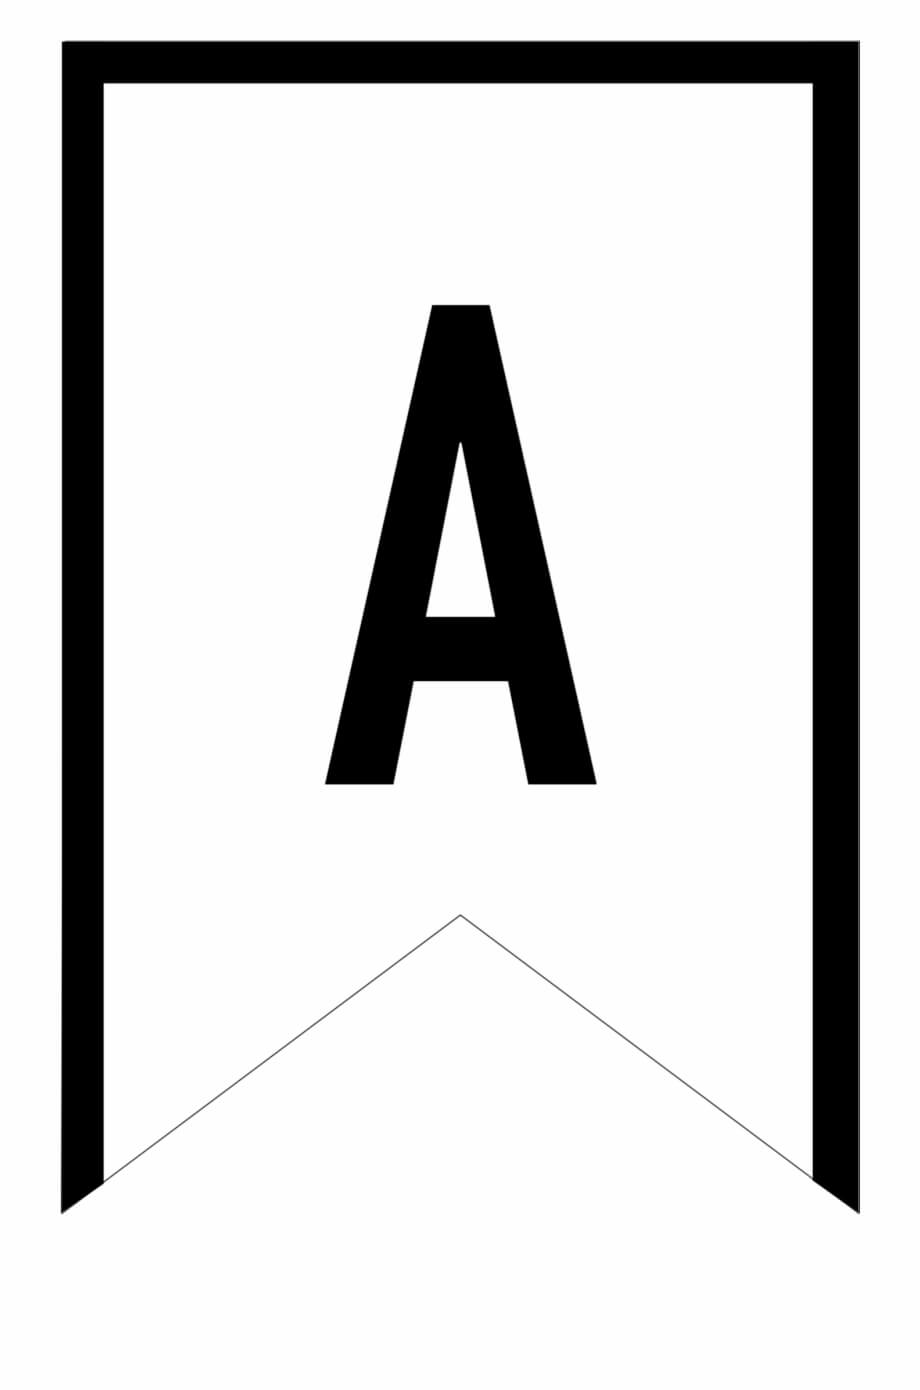 Banner Templates Free Printable Abc Letters - Printable for Printable Letter Templates For Banners